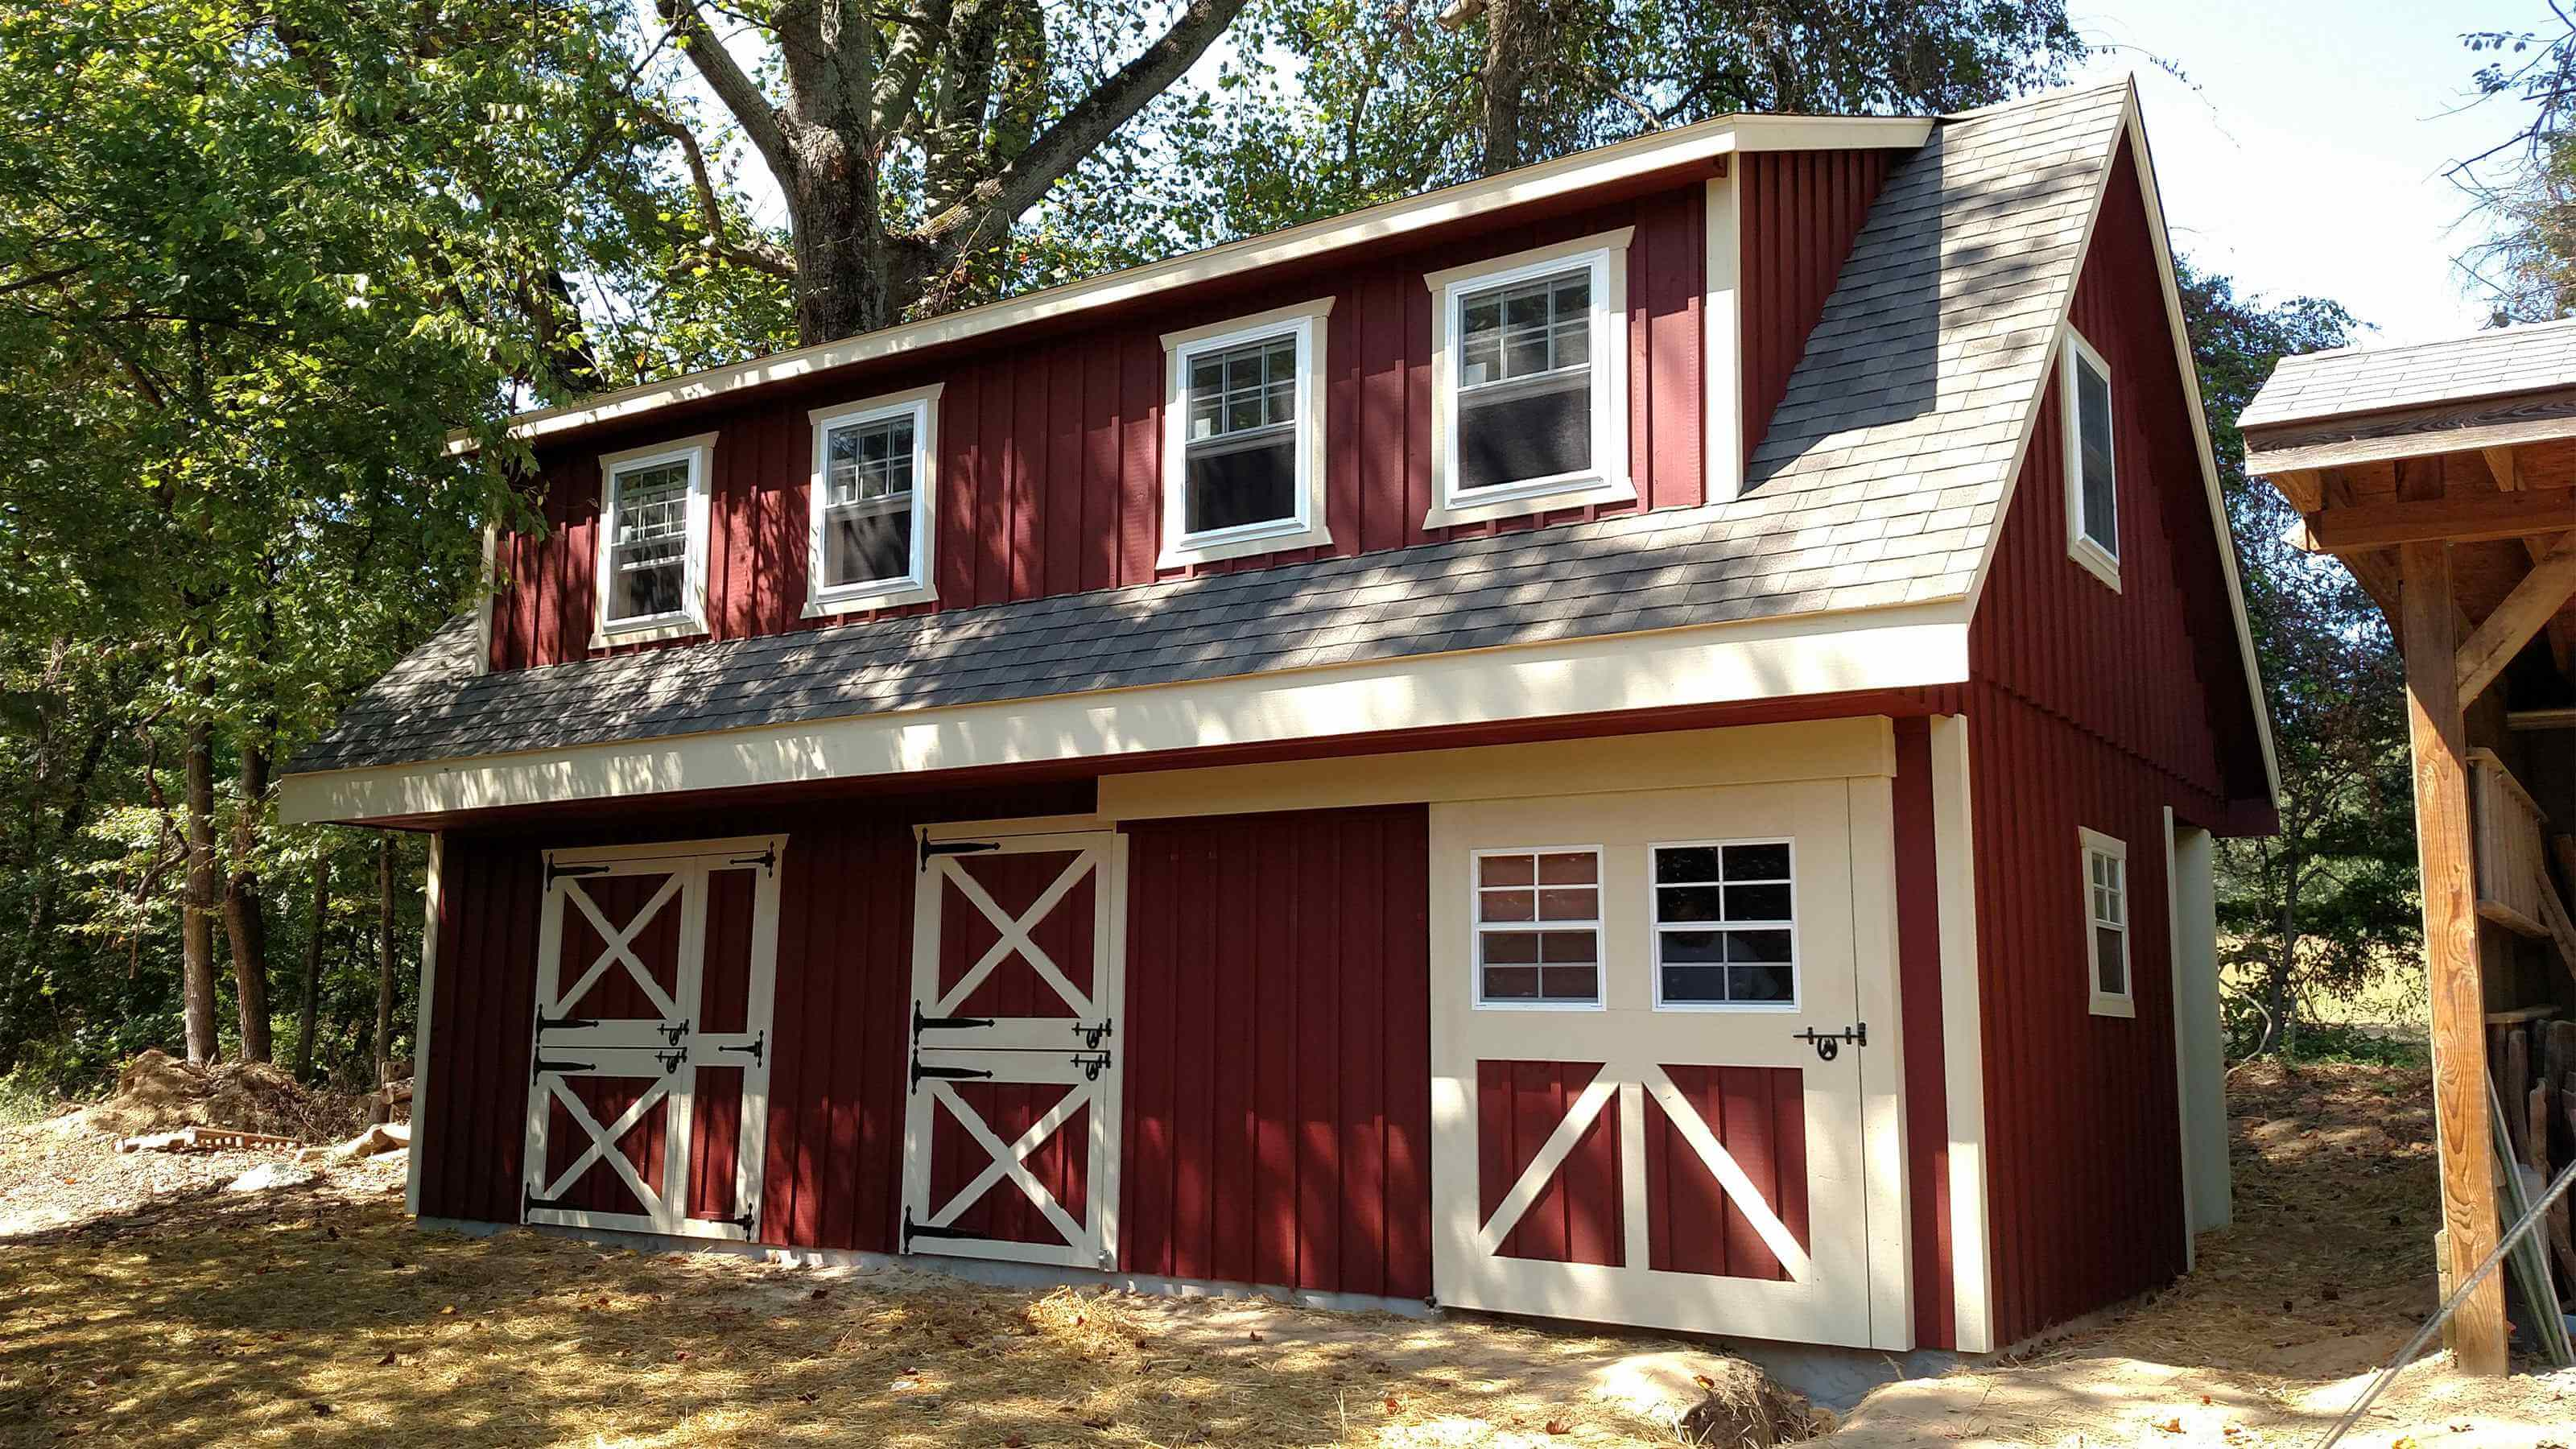 2 story red barn - Horse Barns of Virginia